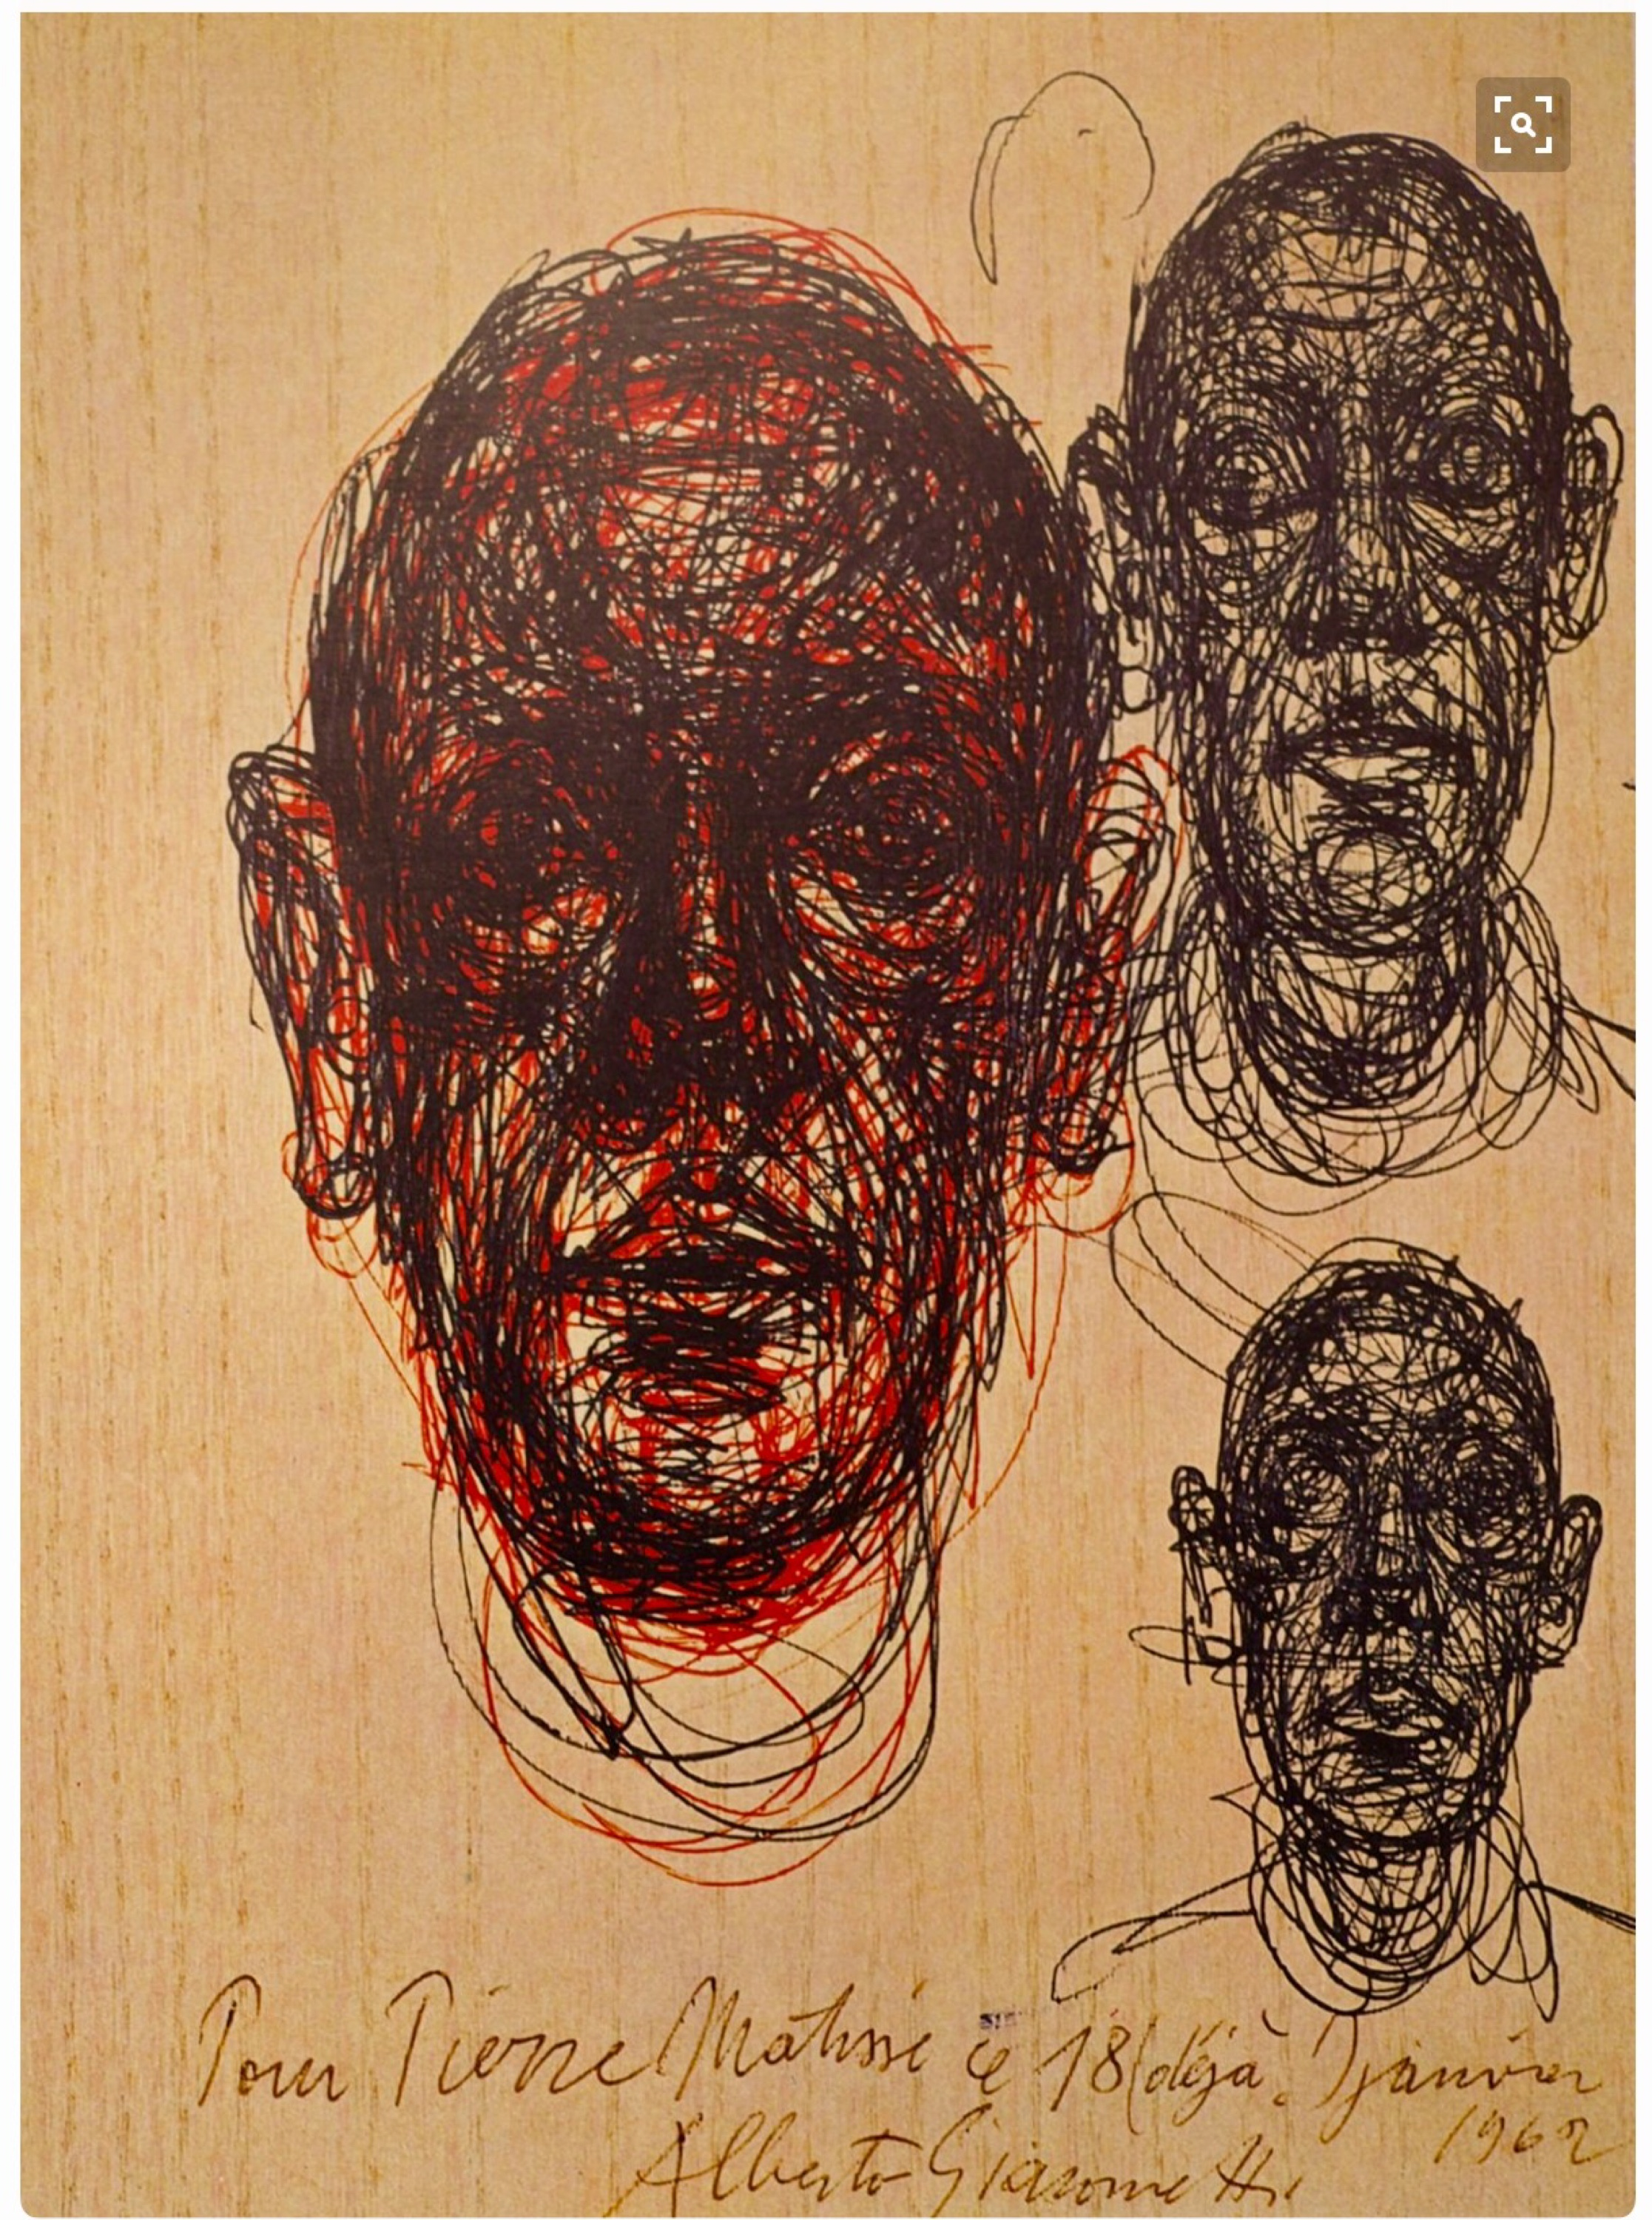 Line Drawing Artist Research : Giacometti sketch book page and random drawing efforts